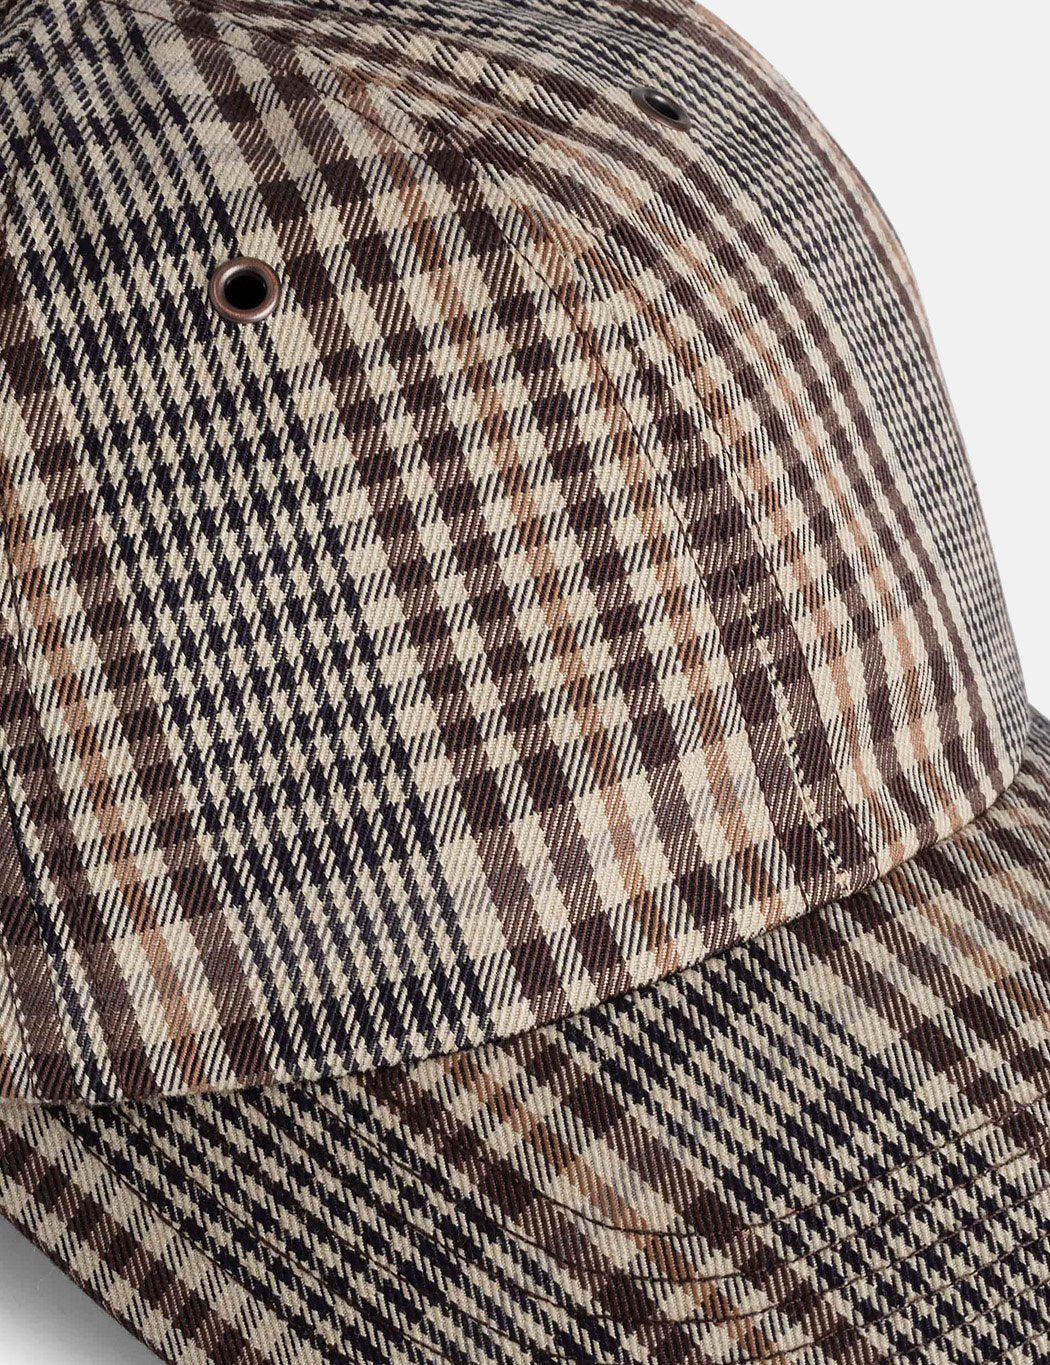 Norse Projects Compact Twill Sport Cap - Beige / Braun prüfen